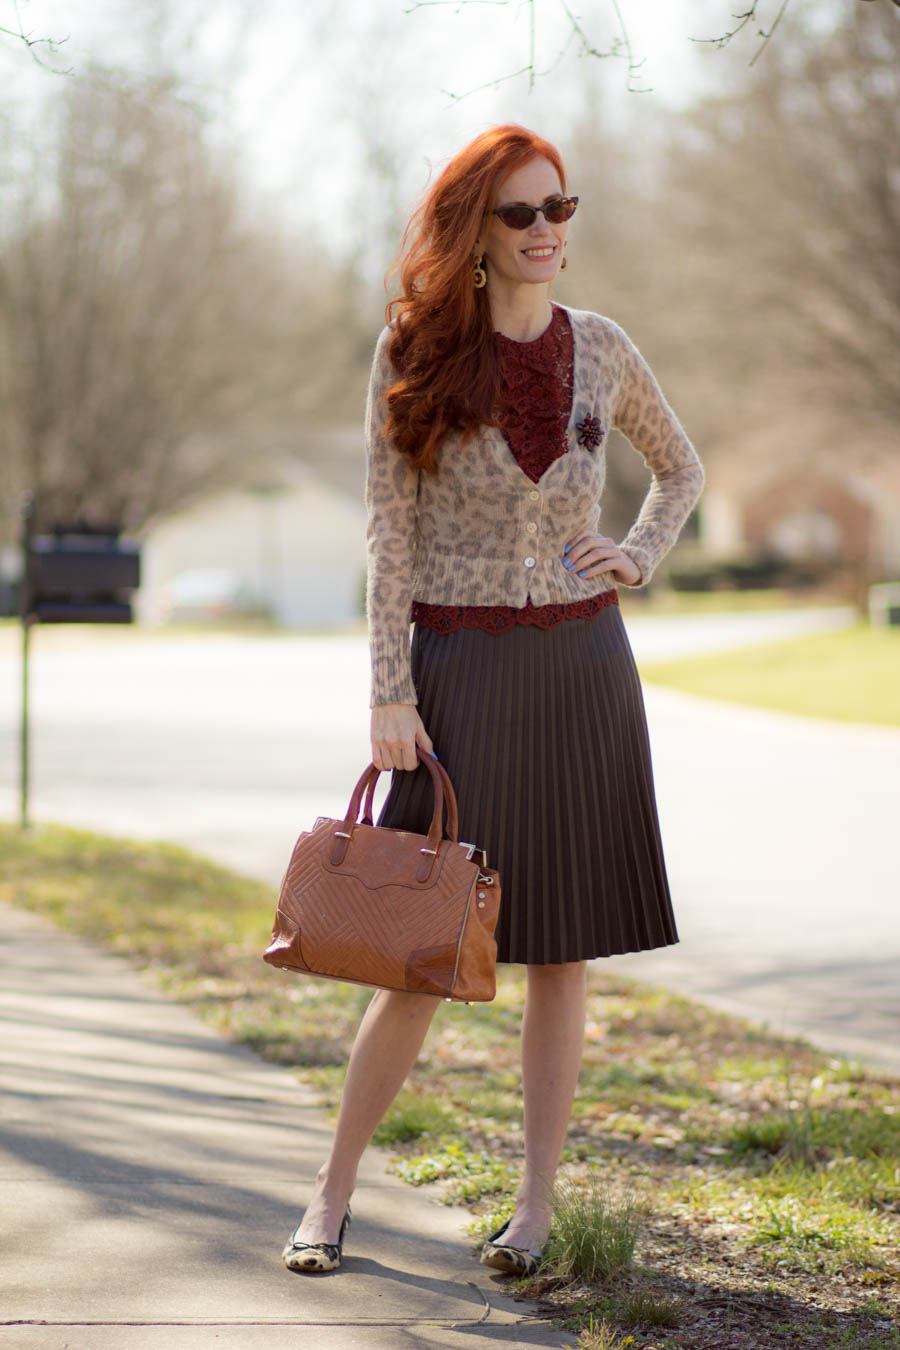 b6faf00719 Outfit Details: Cardigan: Banana Republic Mad Men Collection ( 3 yrs old),  Lace top: Zara, Brown Faux Leather skirt: ( Ann Taylor), Leopard Print  shoes: ...